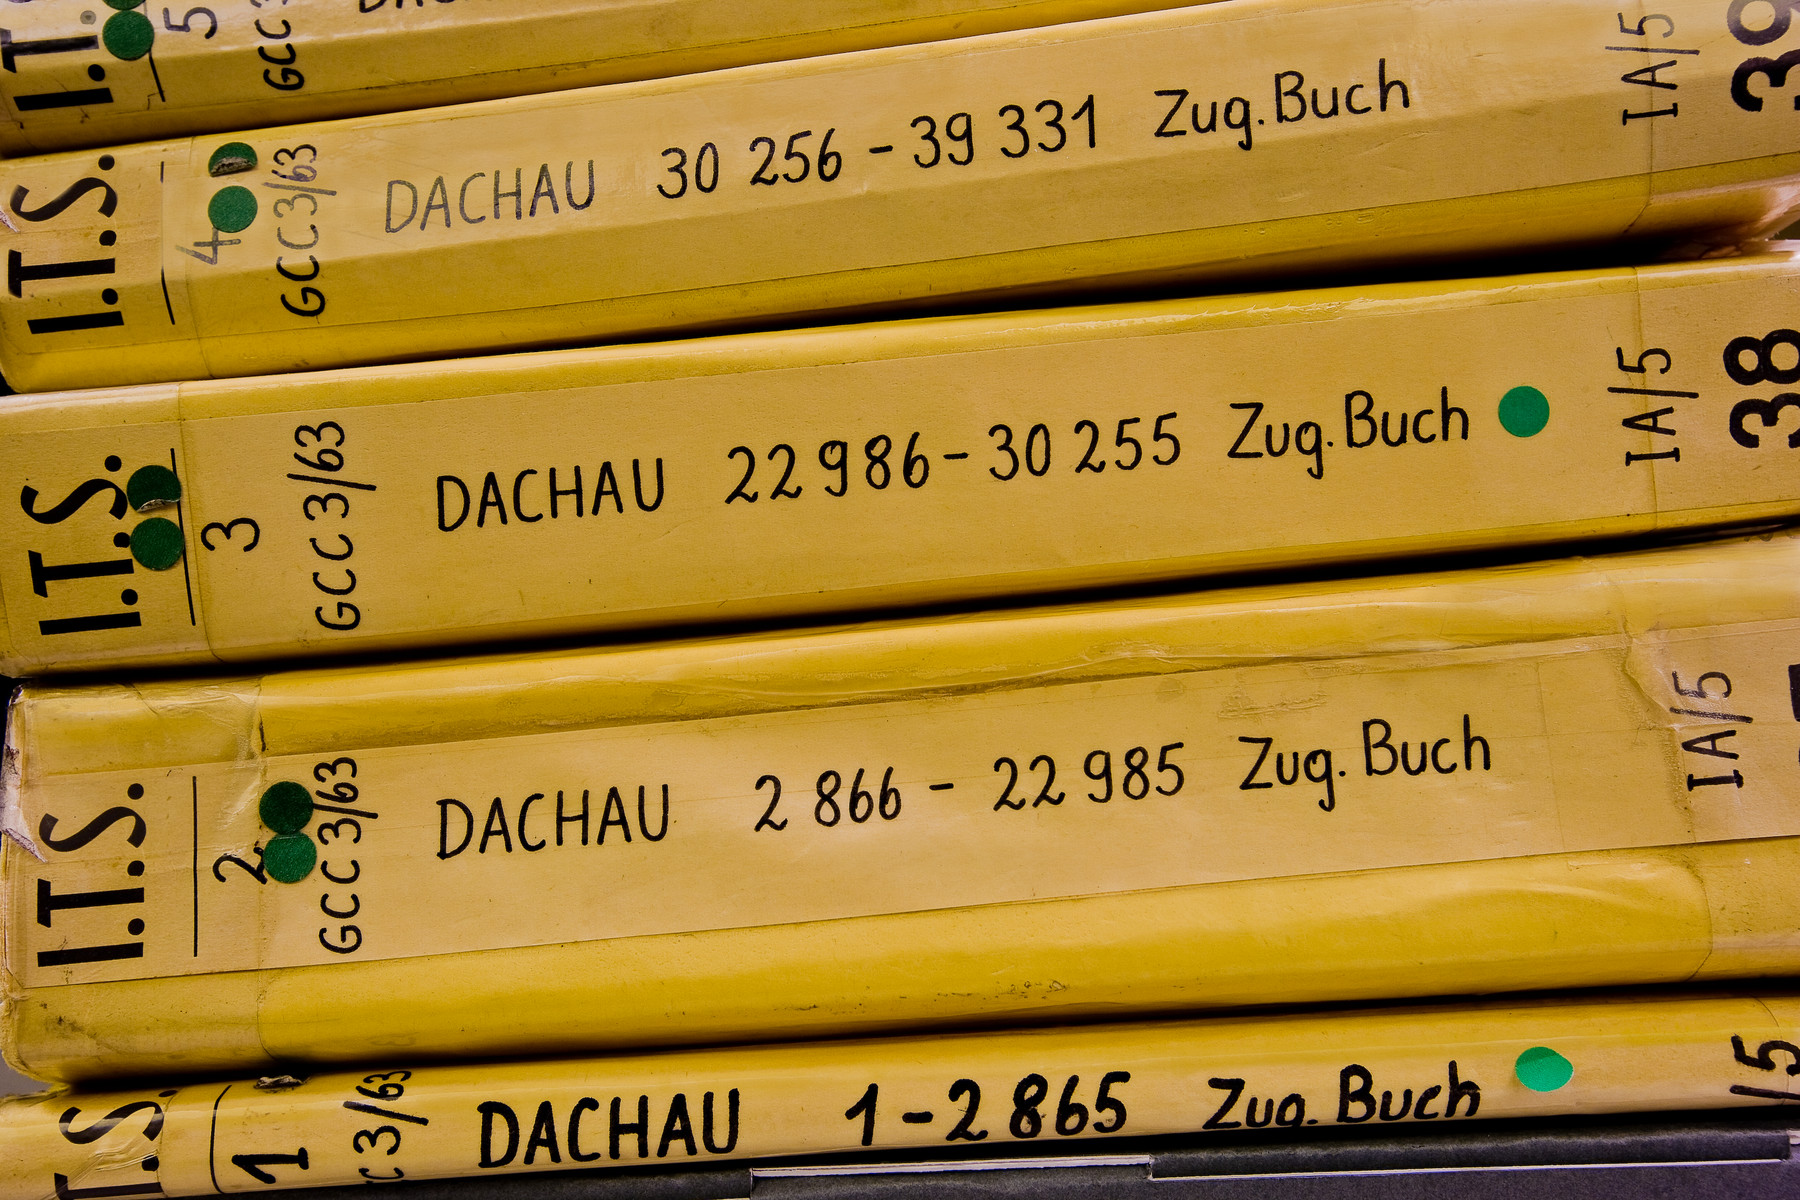 View of five I.T.S. Dachau records books stacked horizontally.